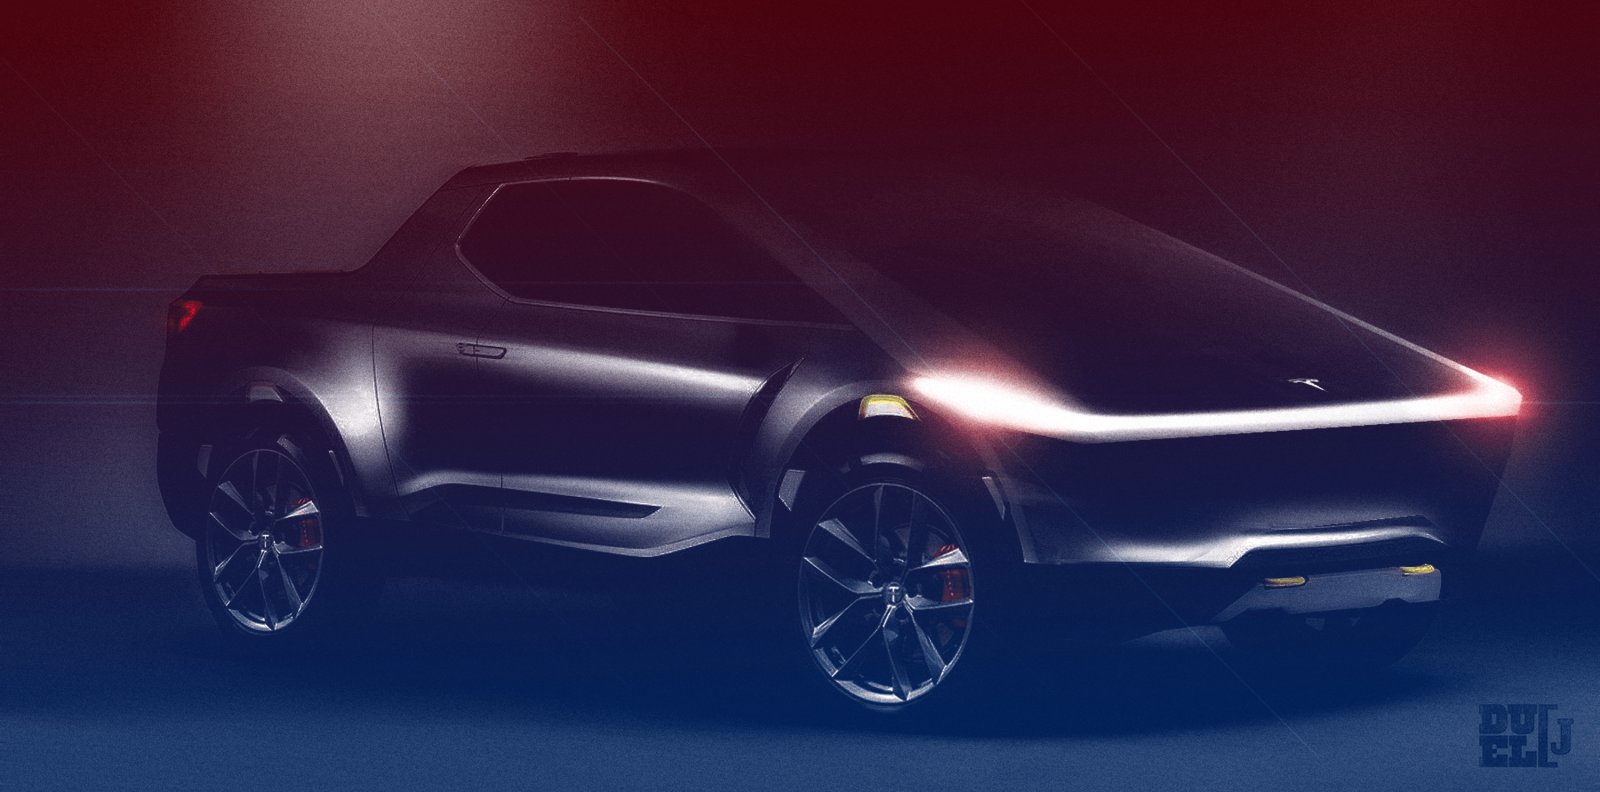 Tesla Pickup truck is 'close' to ready for unveiling, 'magic is in final details'